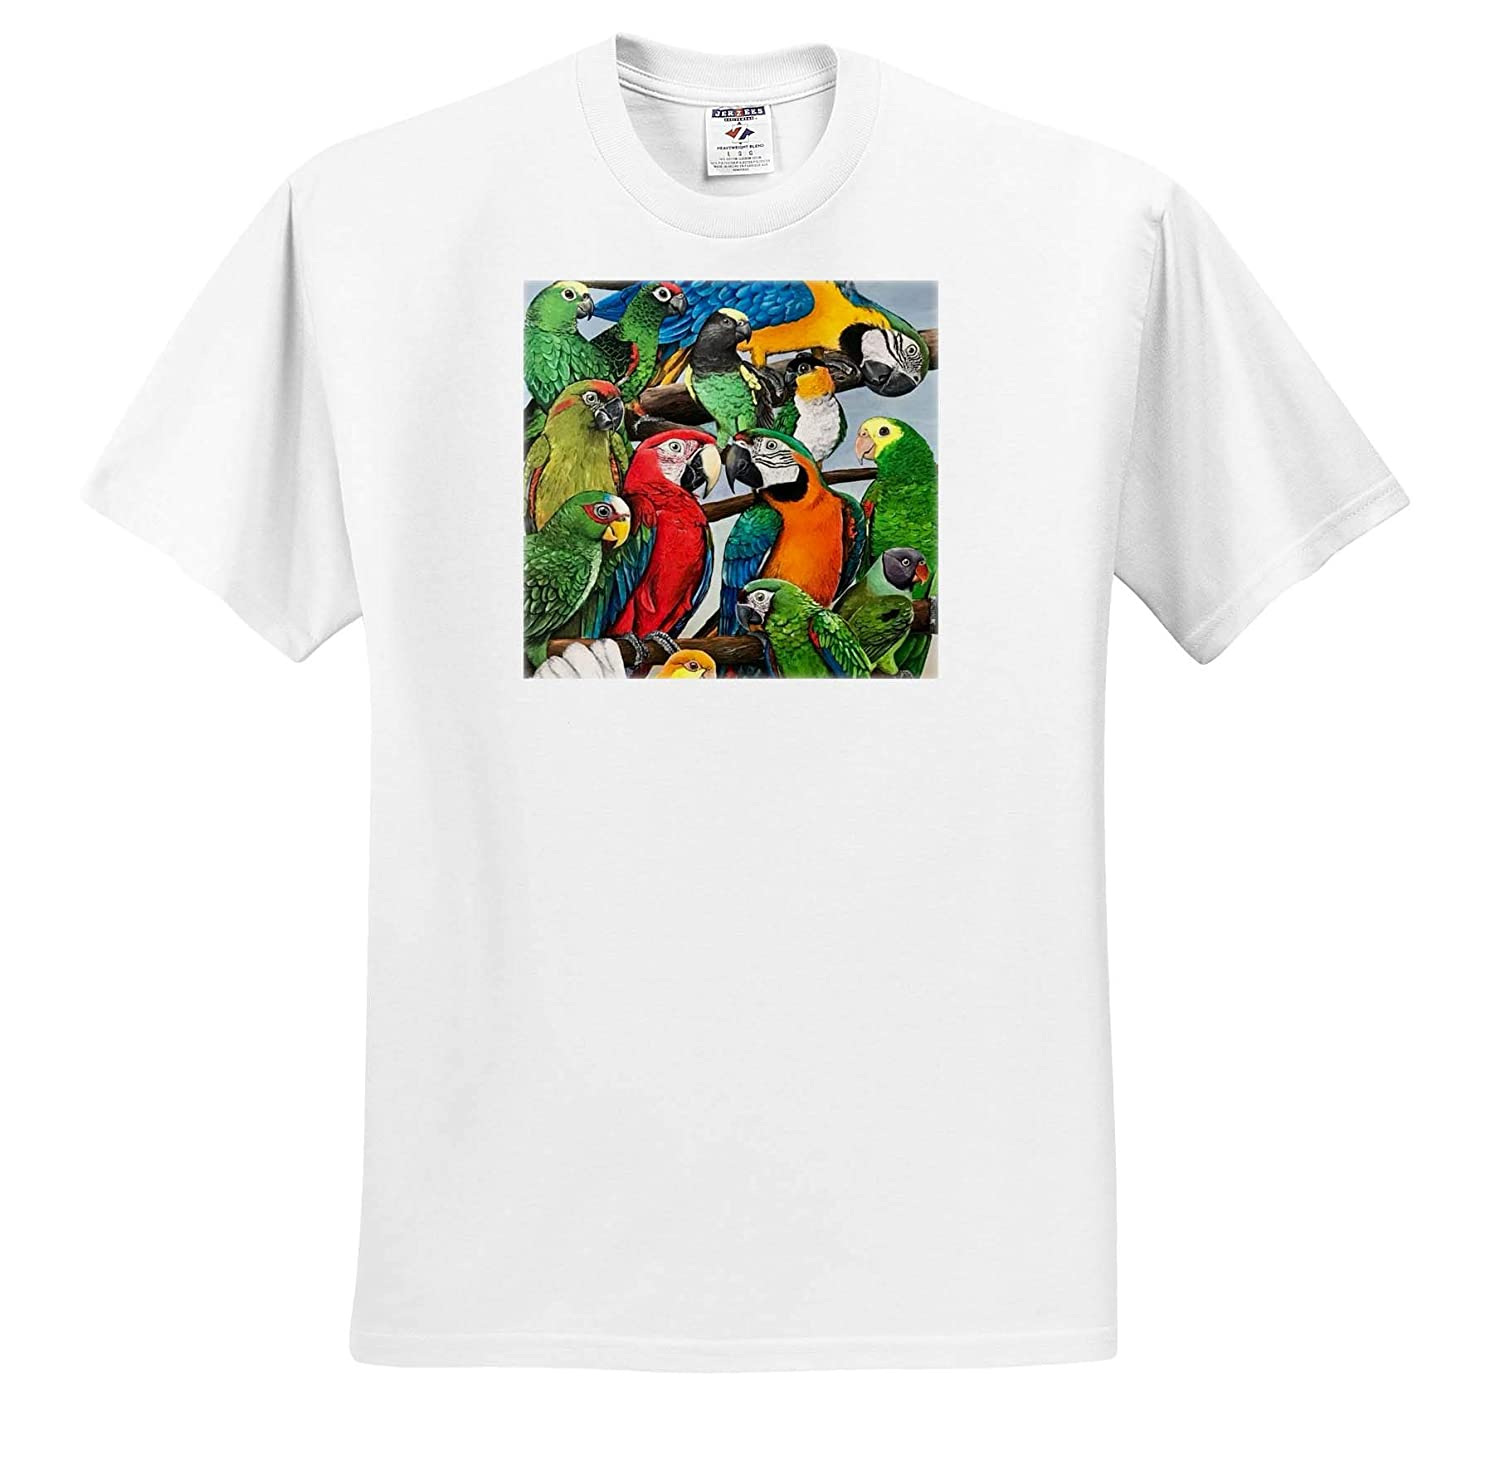 ts/_320529 Macaws and Other Parrots 3dRose Skye Elizabeth Designs Adult T-Shirt XL